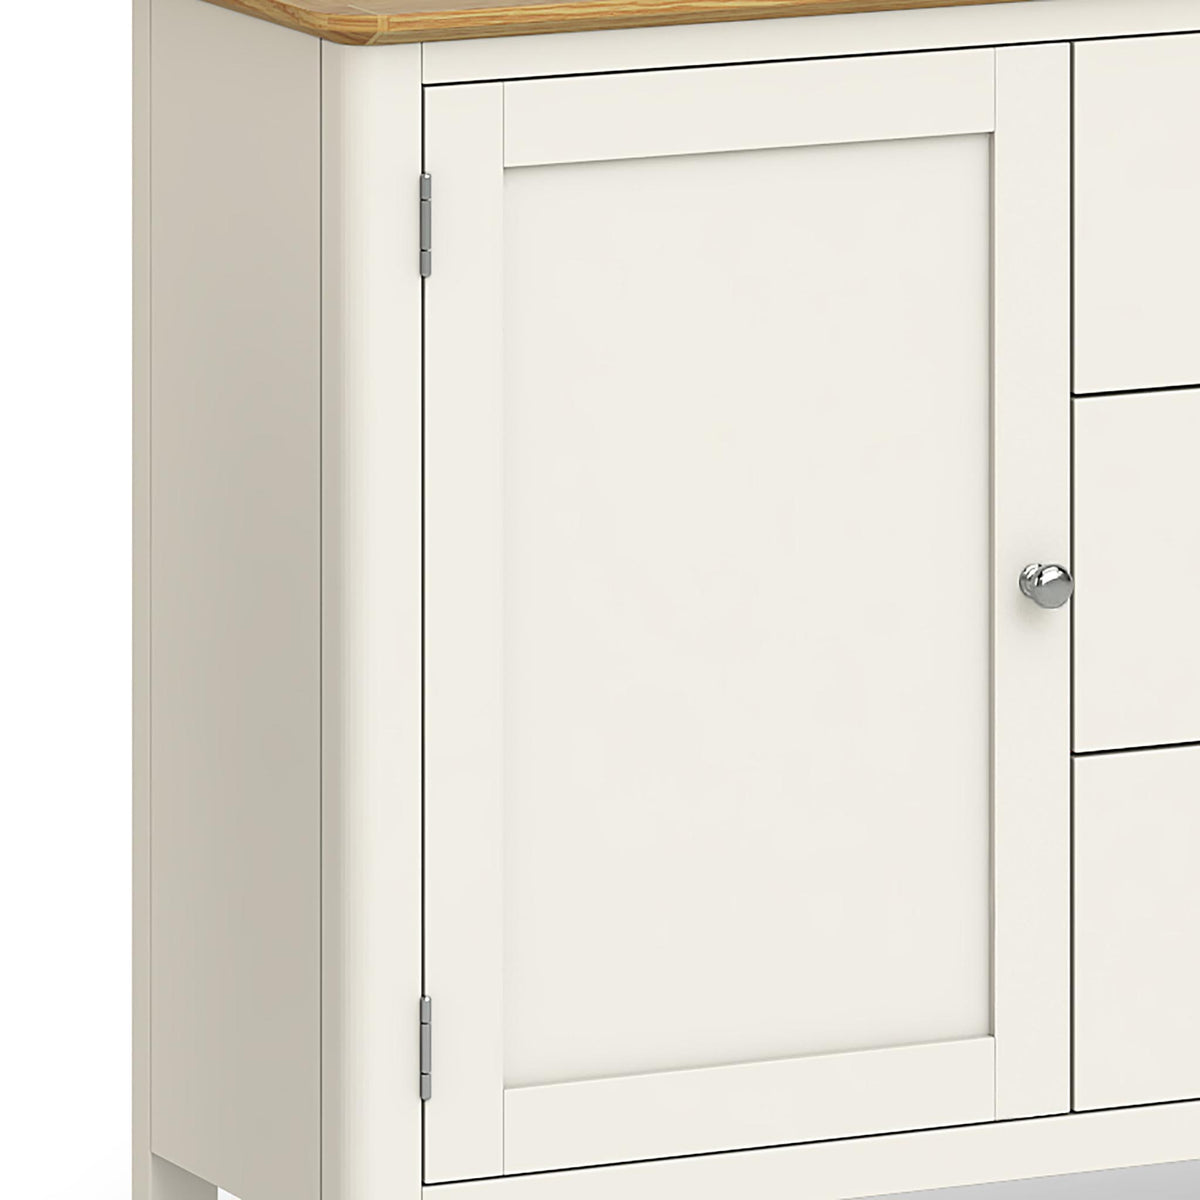 Windsor Cream Large Sideboard - Close Up of Cupboard Door